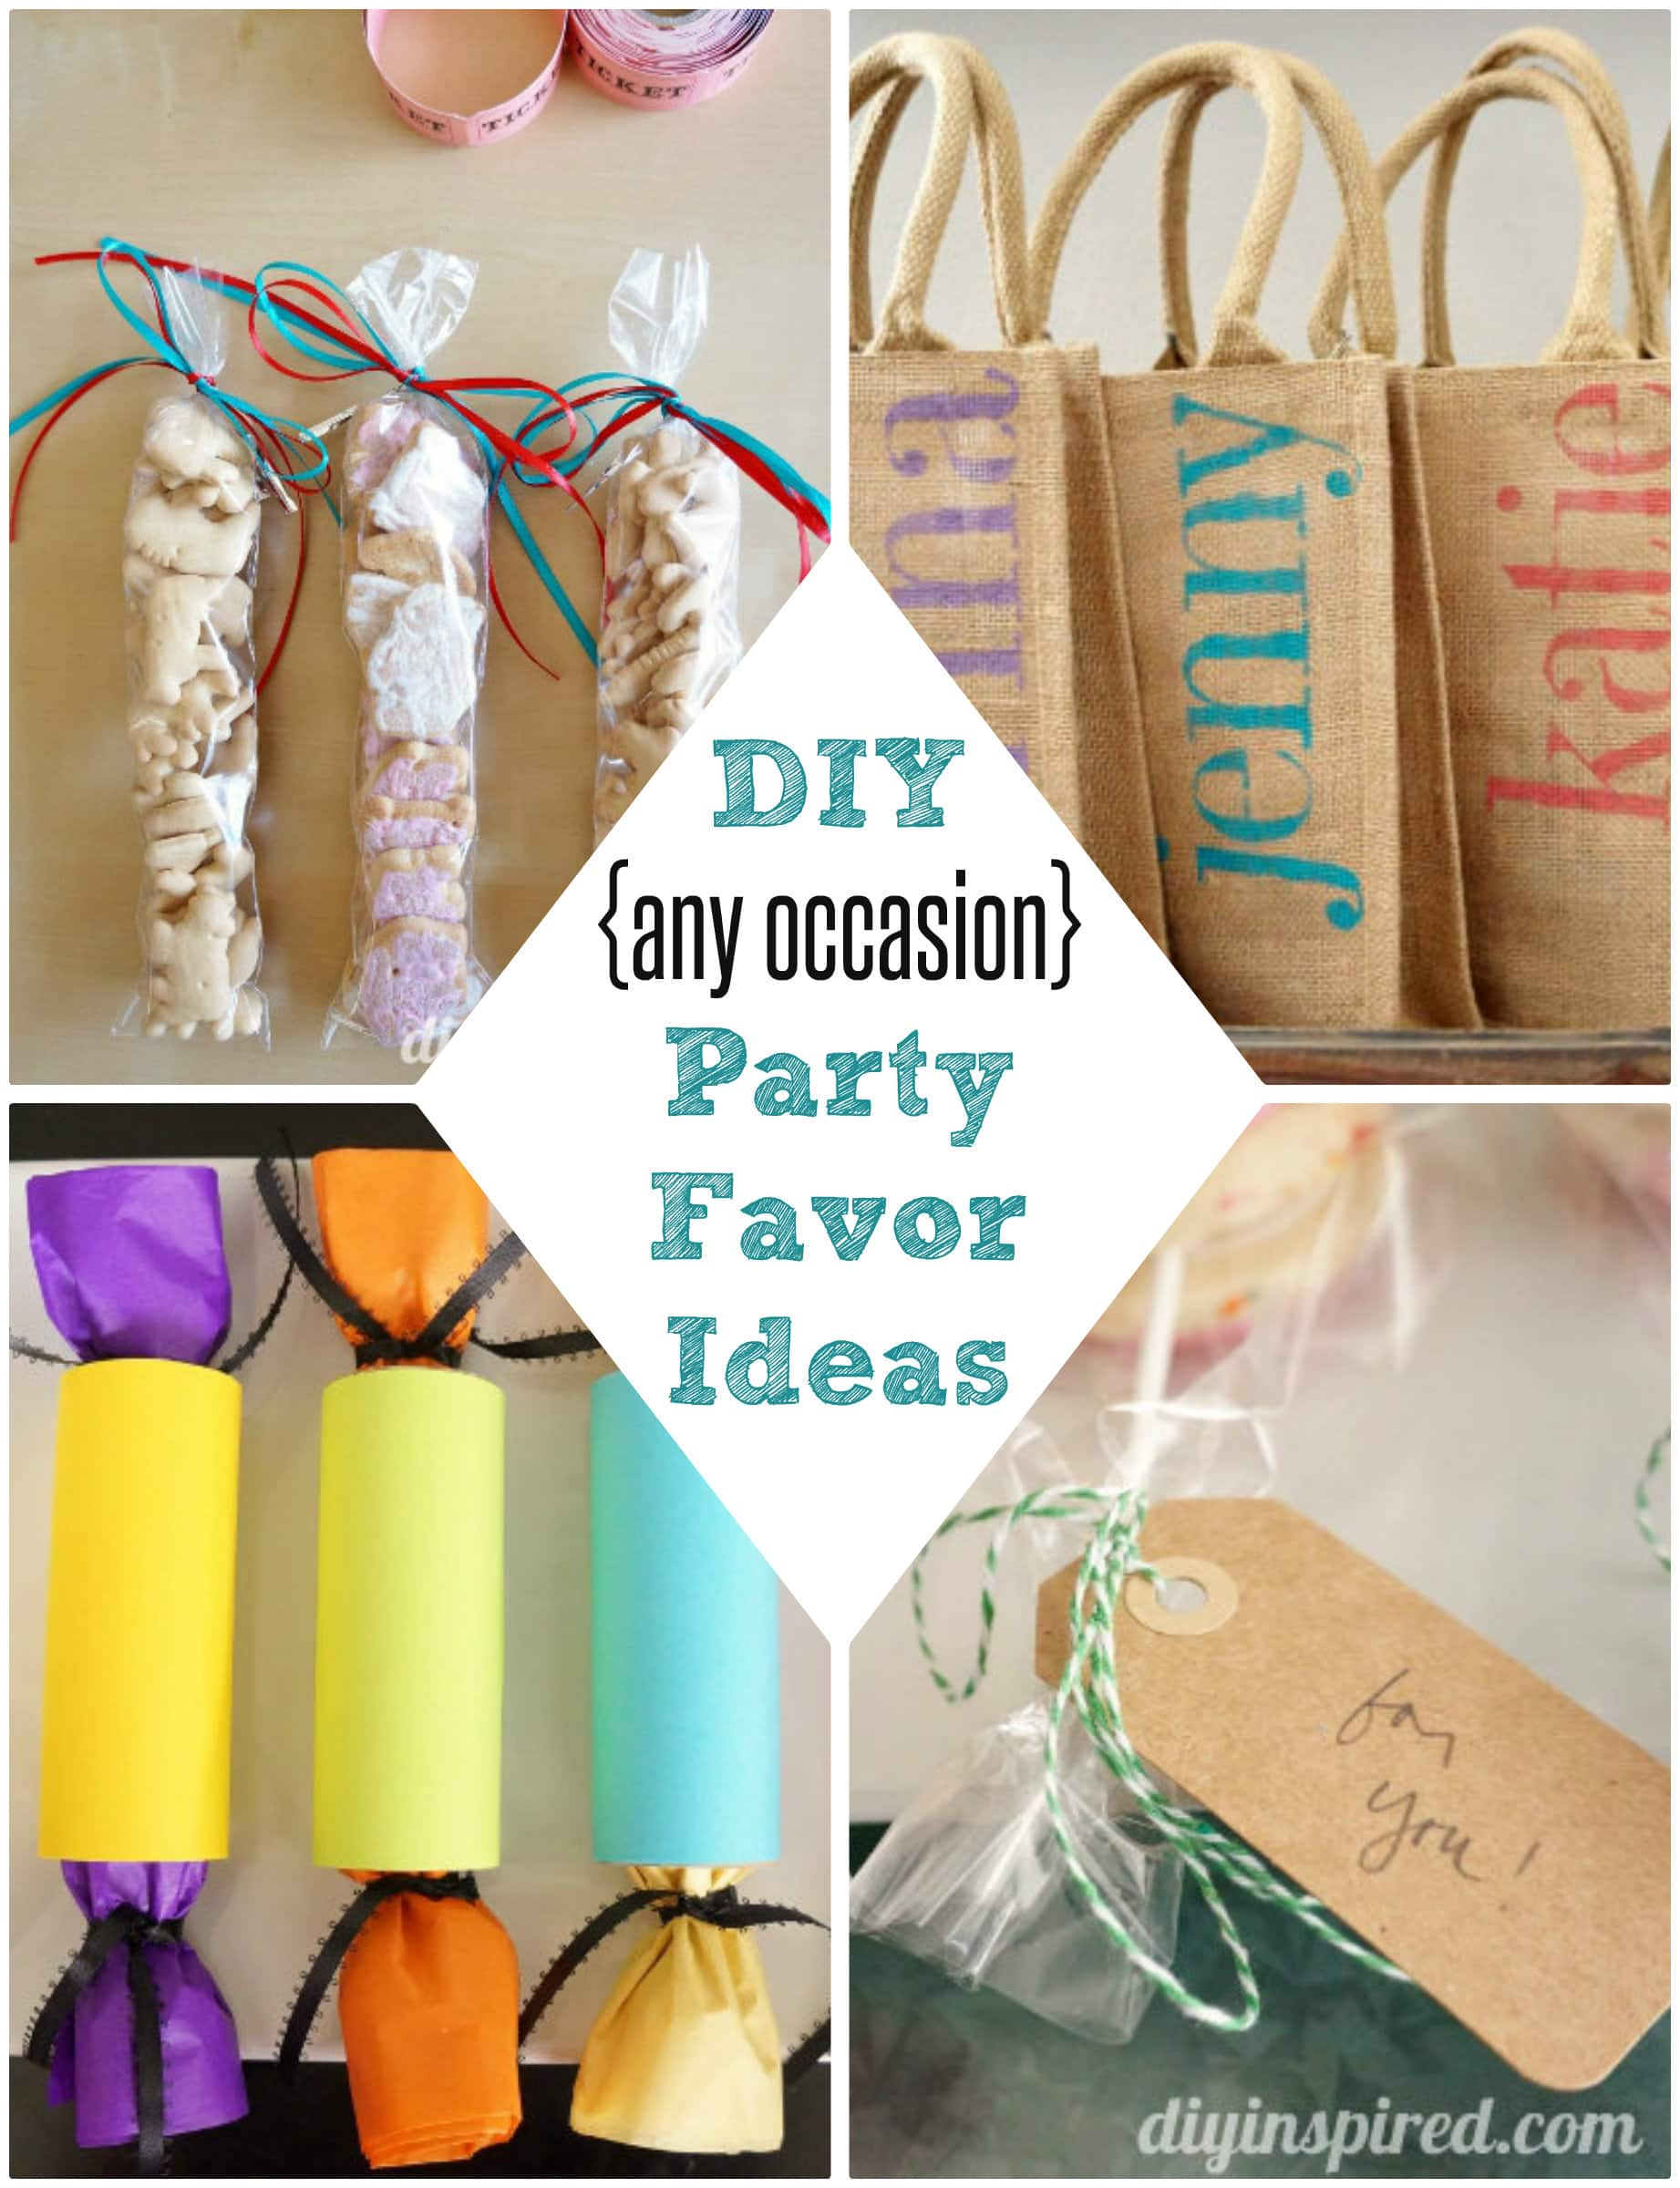 Diy Party Favor Ideas Diy Inspired